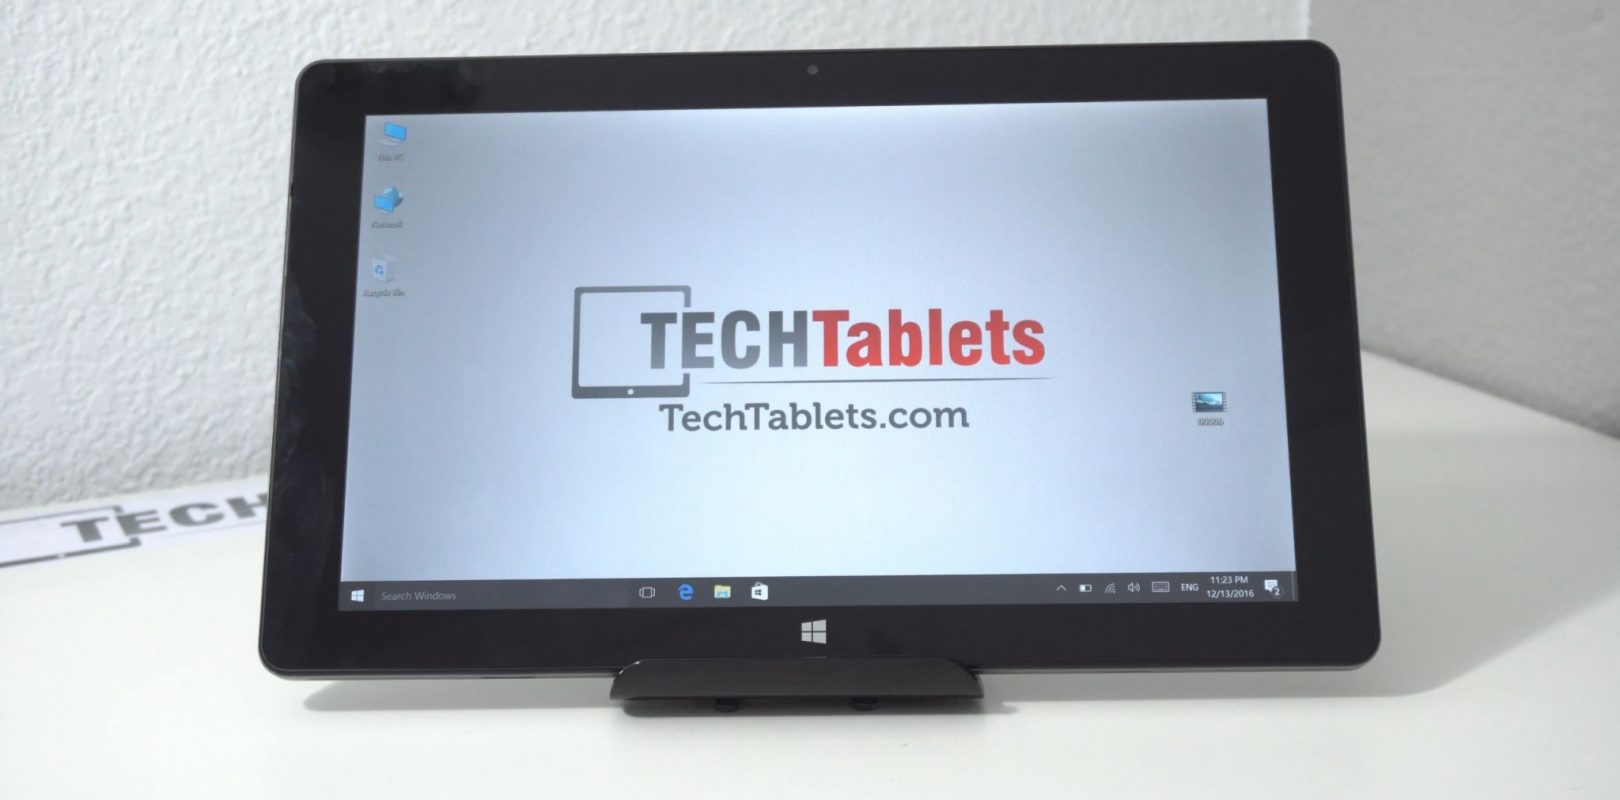 Cube iWork1x (I30 Z8350) Drivers Section Added - TechTablets